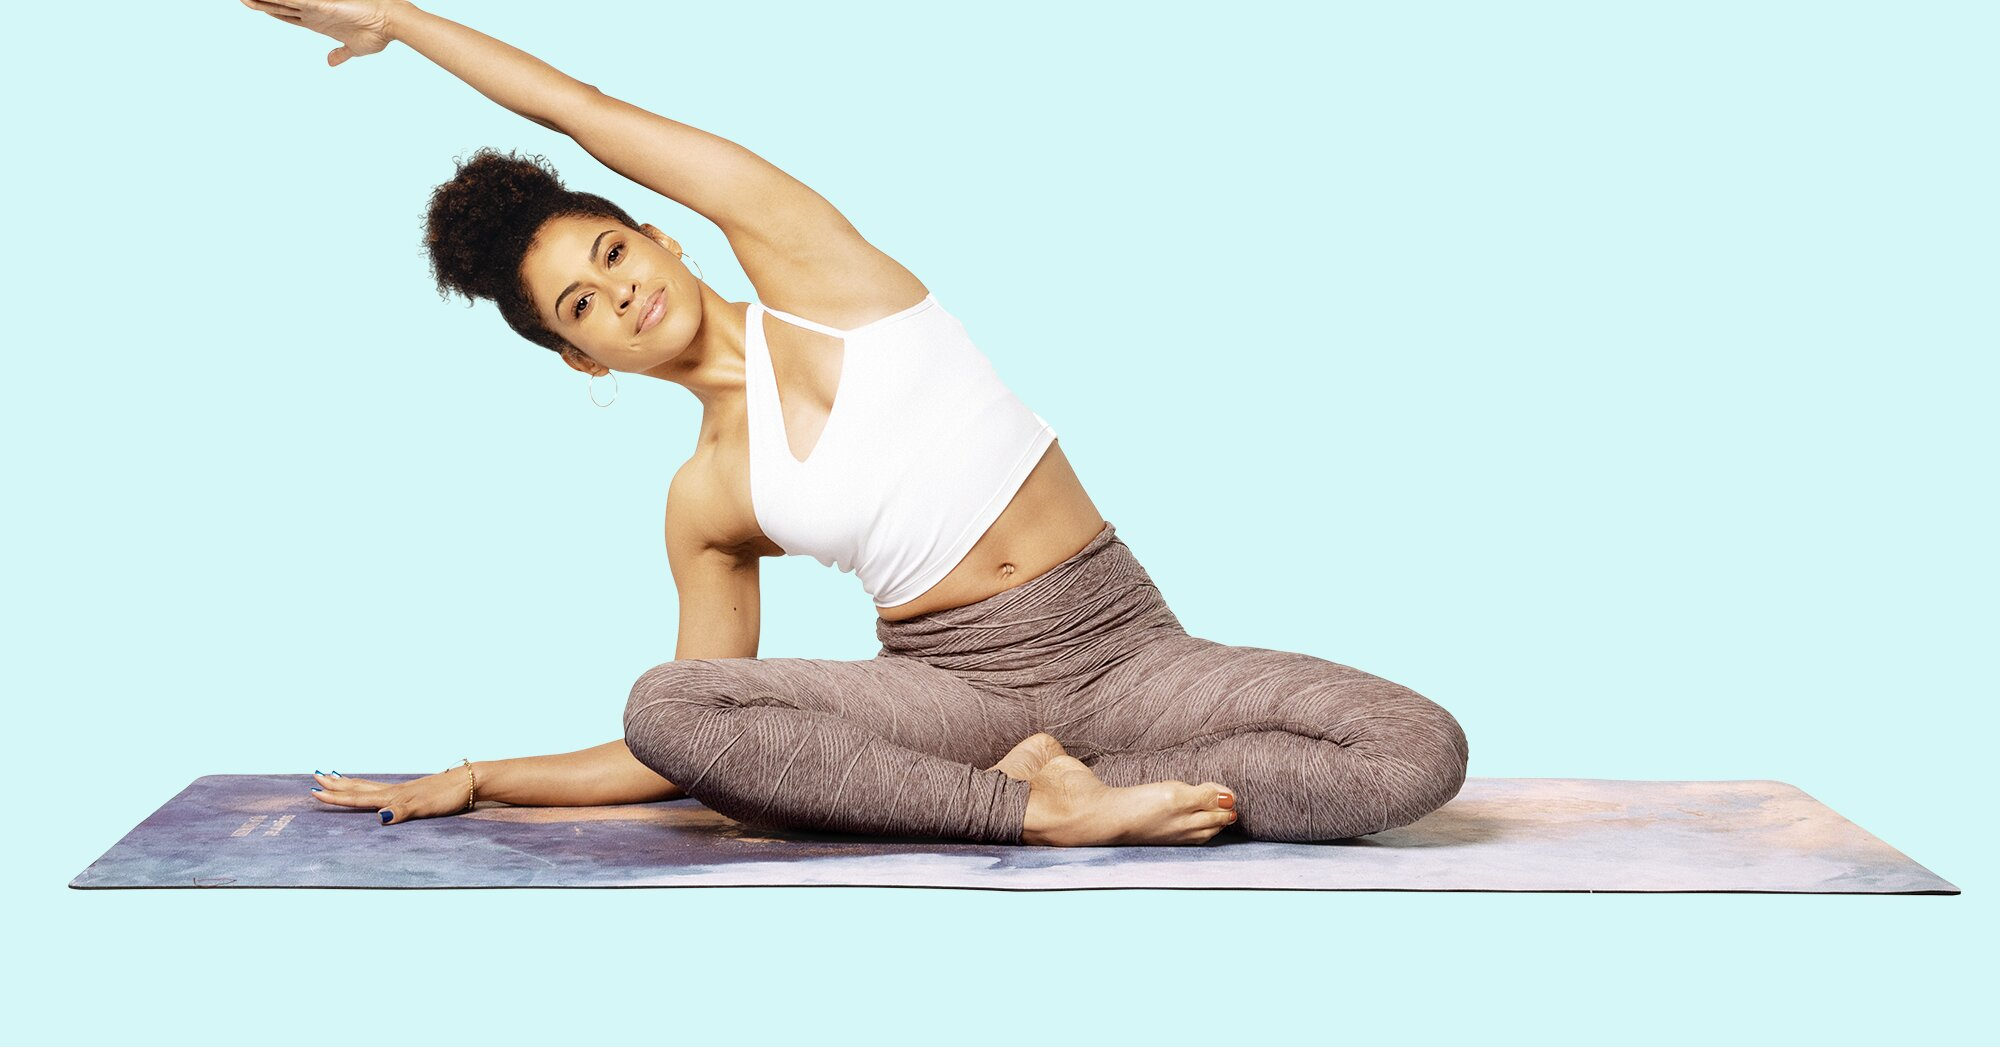 These Full-Body Stretches Will Help You Find Your Flexibility